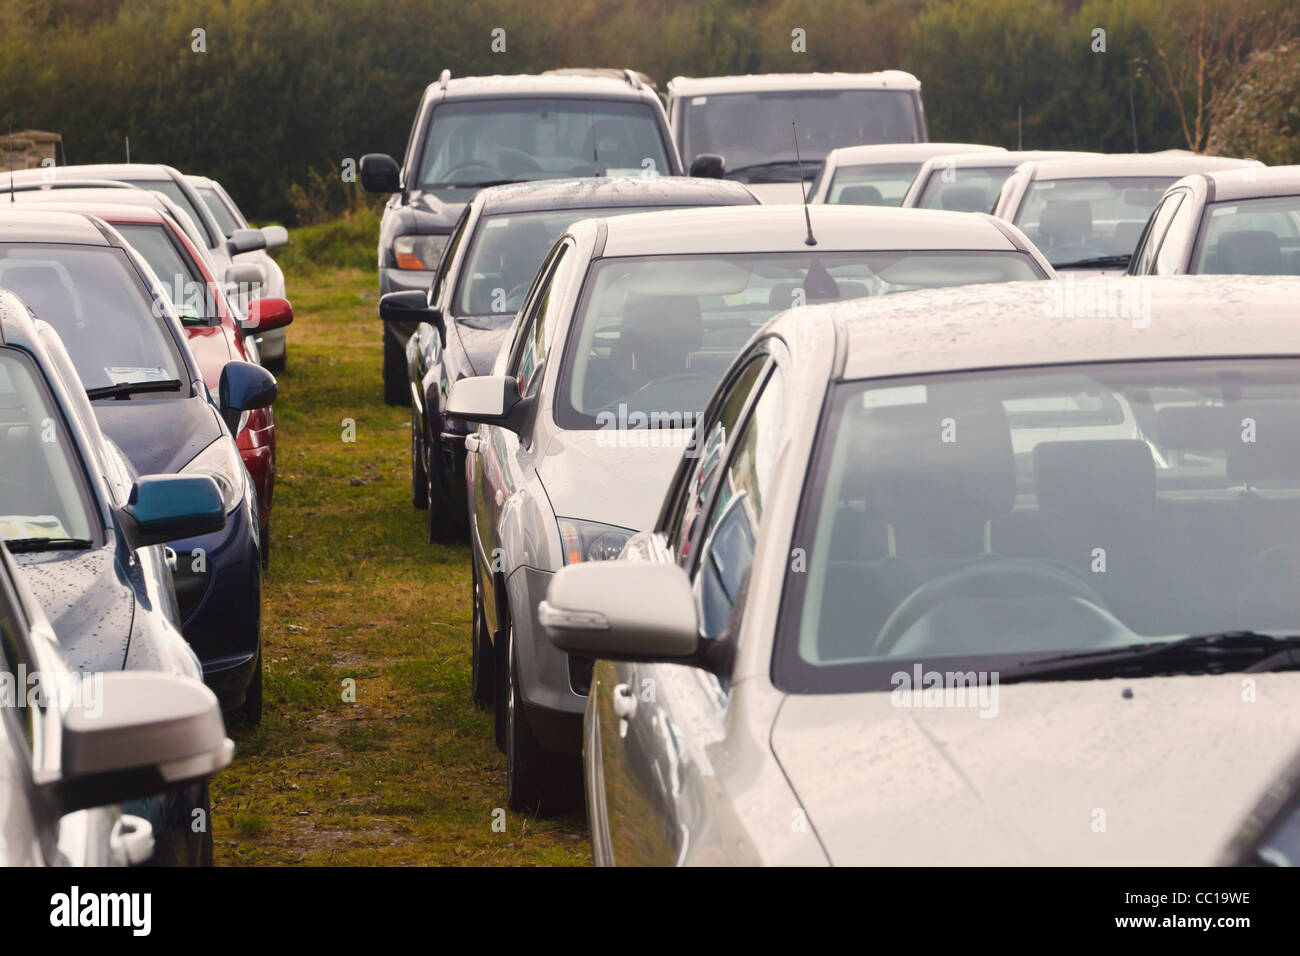 Parked cars waiting to be sold, Dunmaway, County Cork, Republic of Ireland. - Stock Image